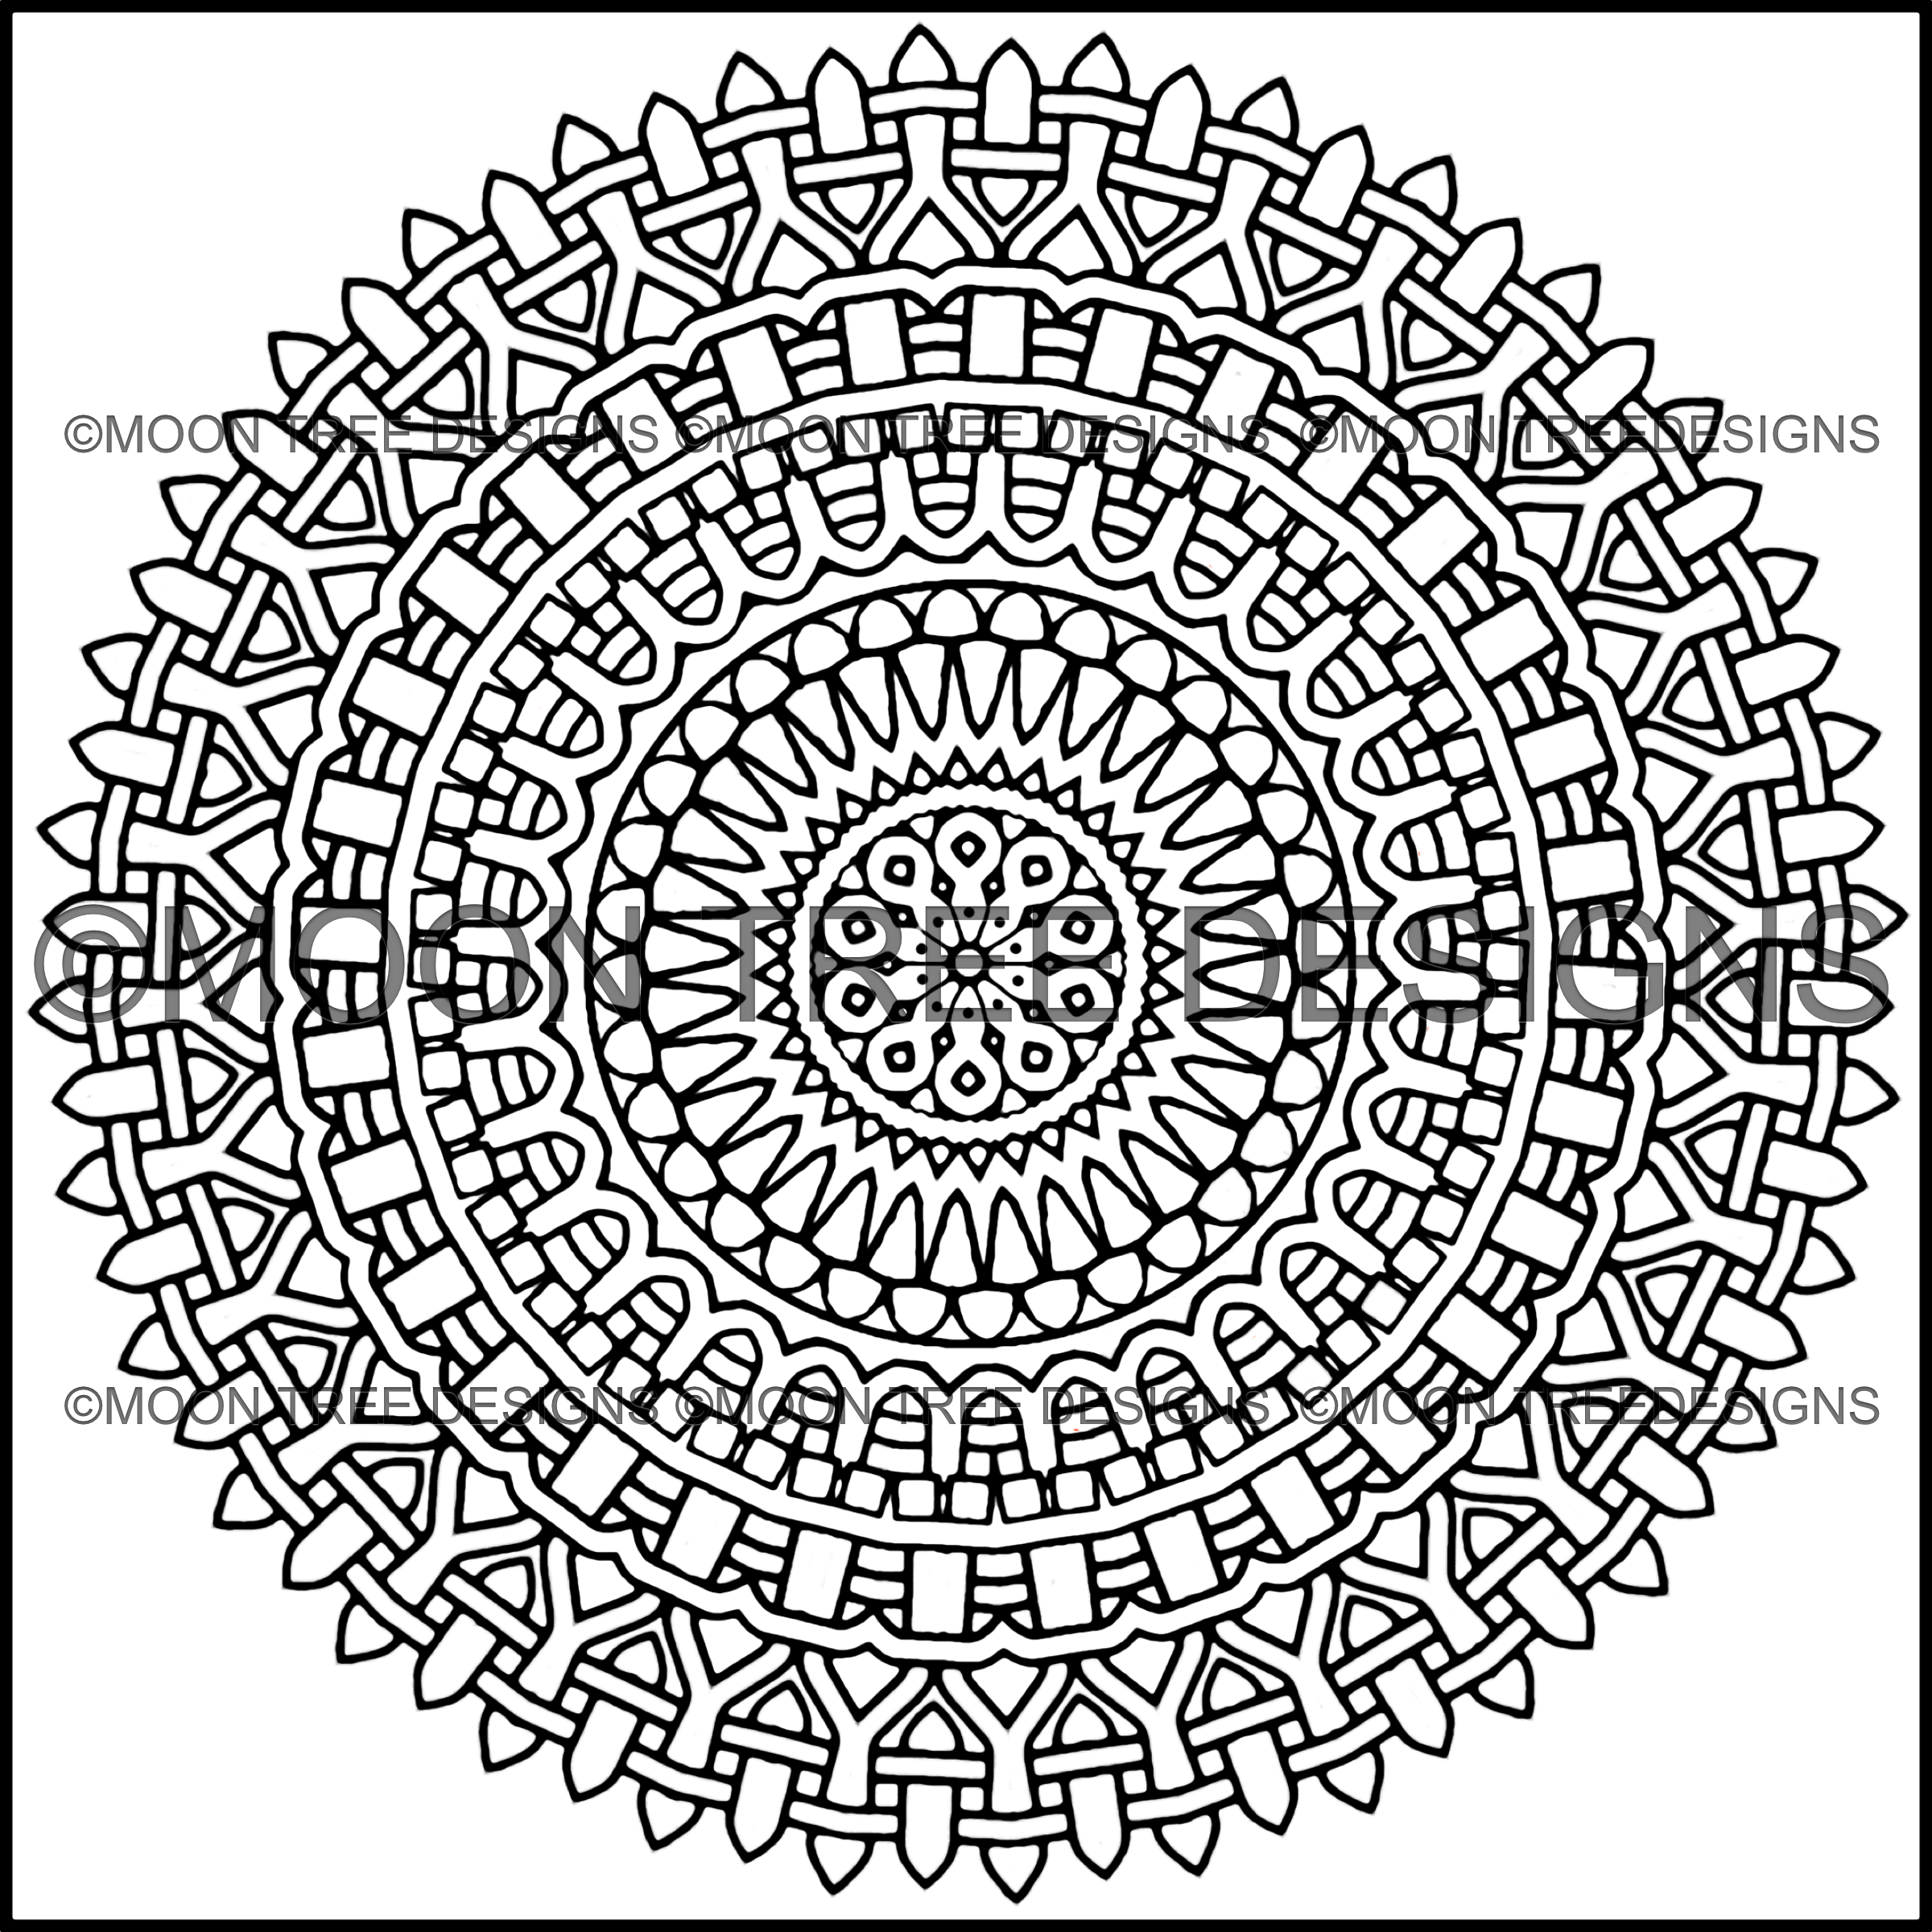 A Coloring Book that can be downloaded and colored. You